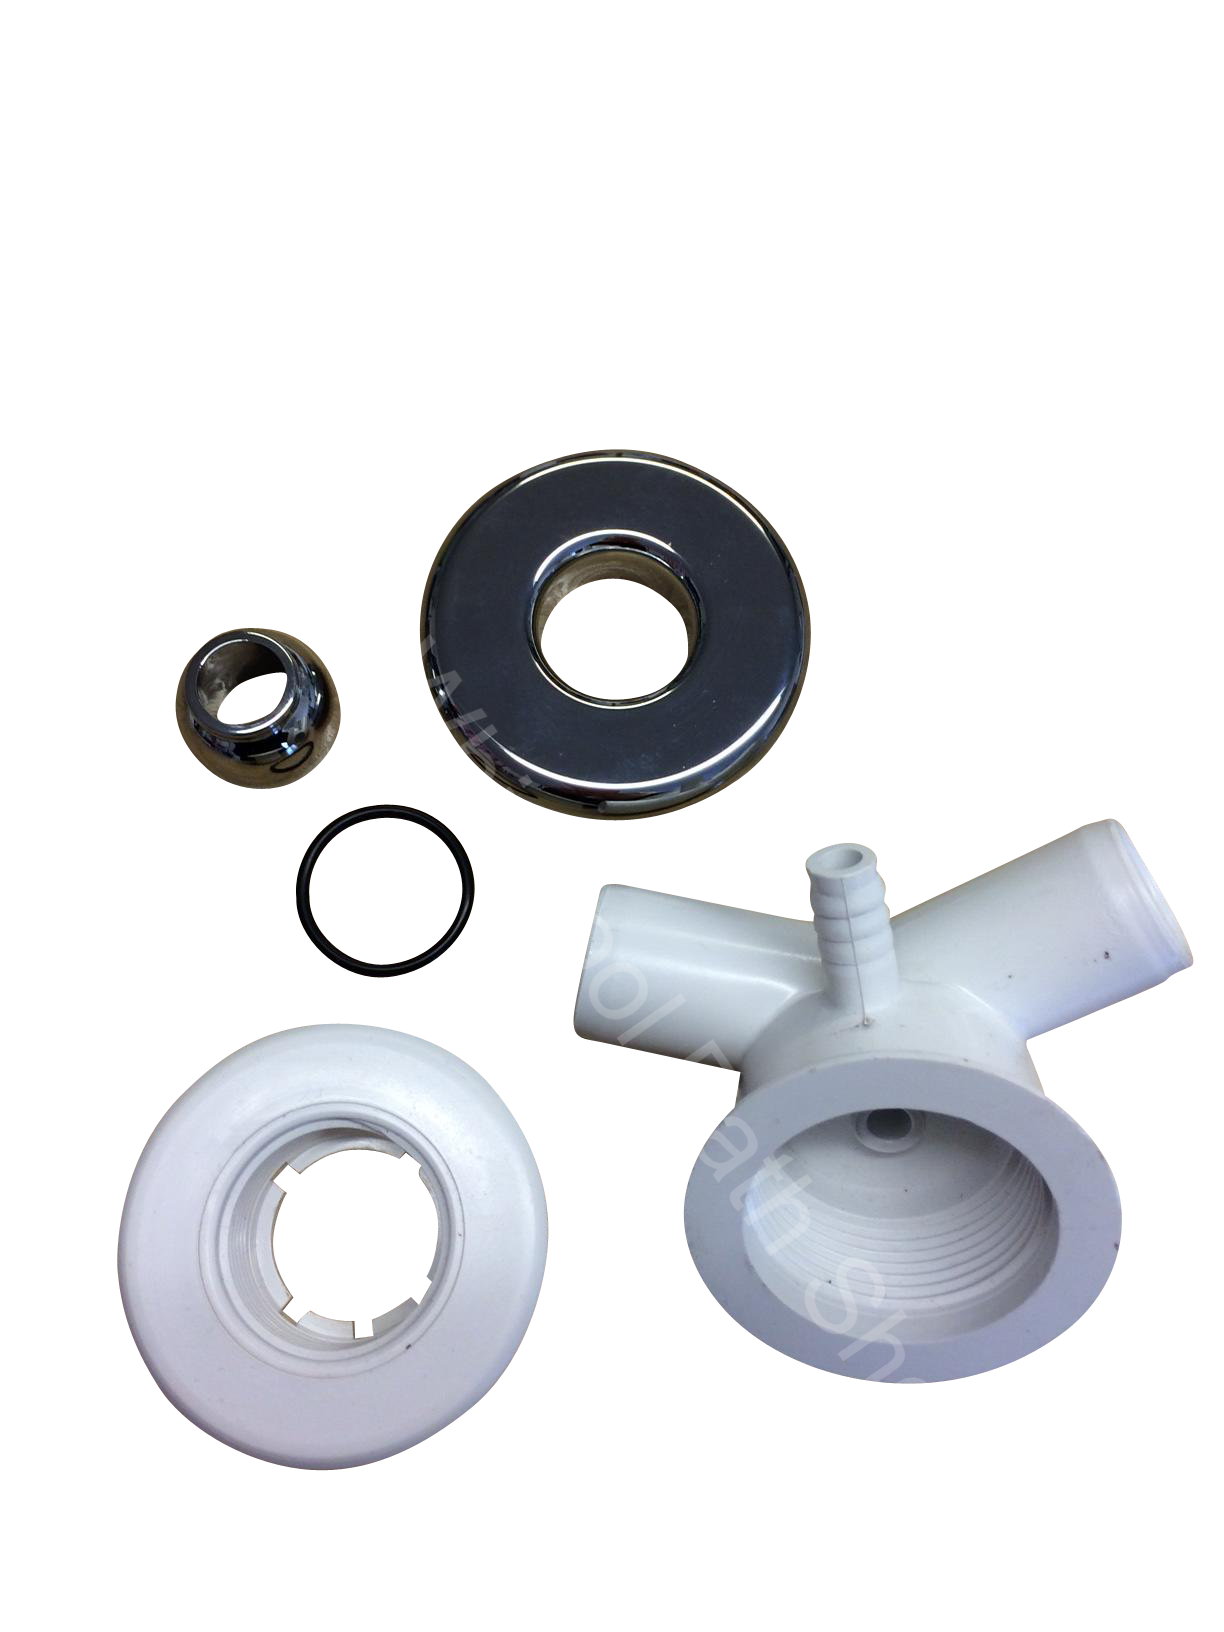 V-Tec Self Draining Whirlpool Jet Components